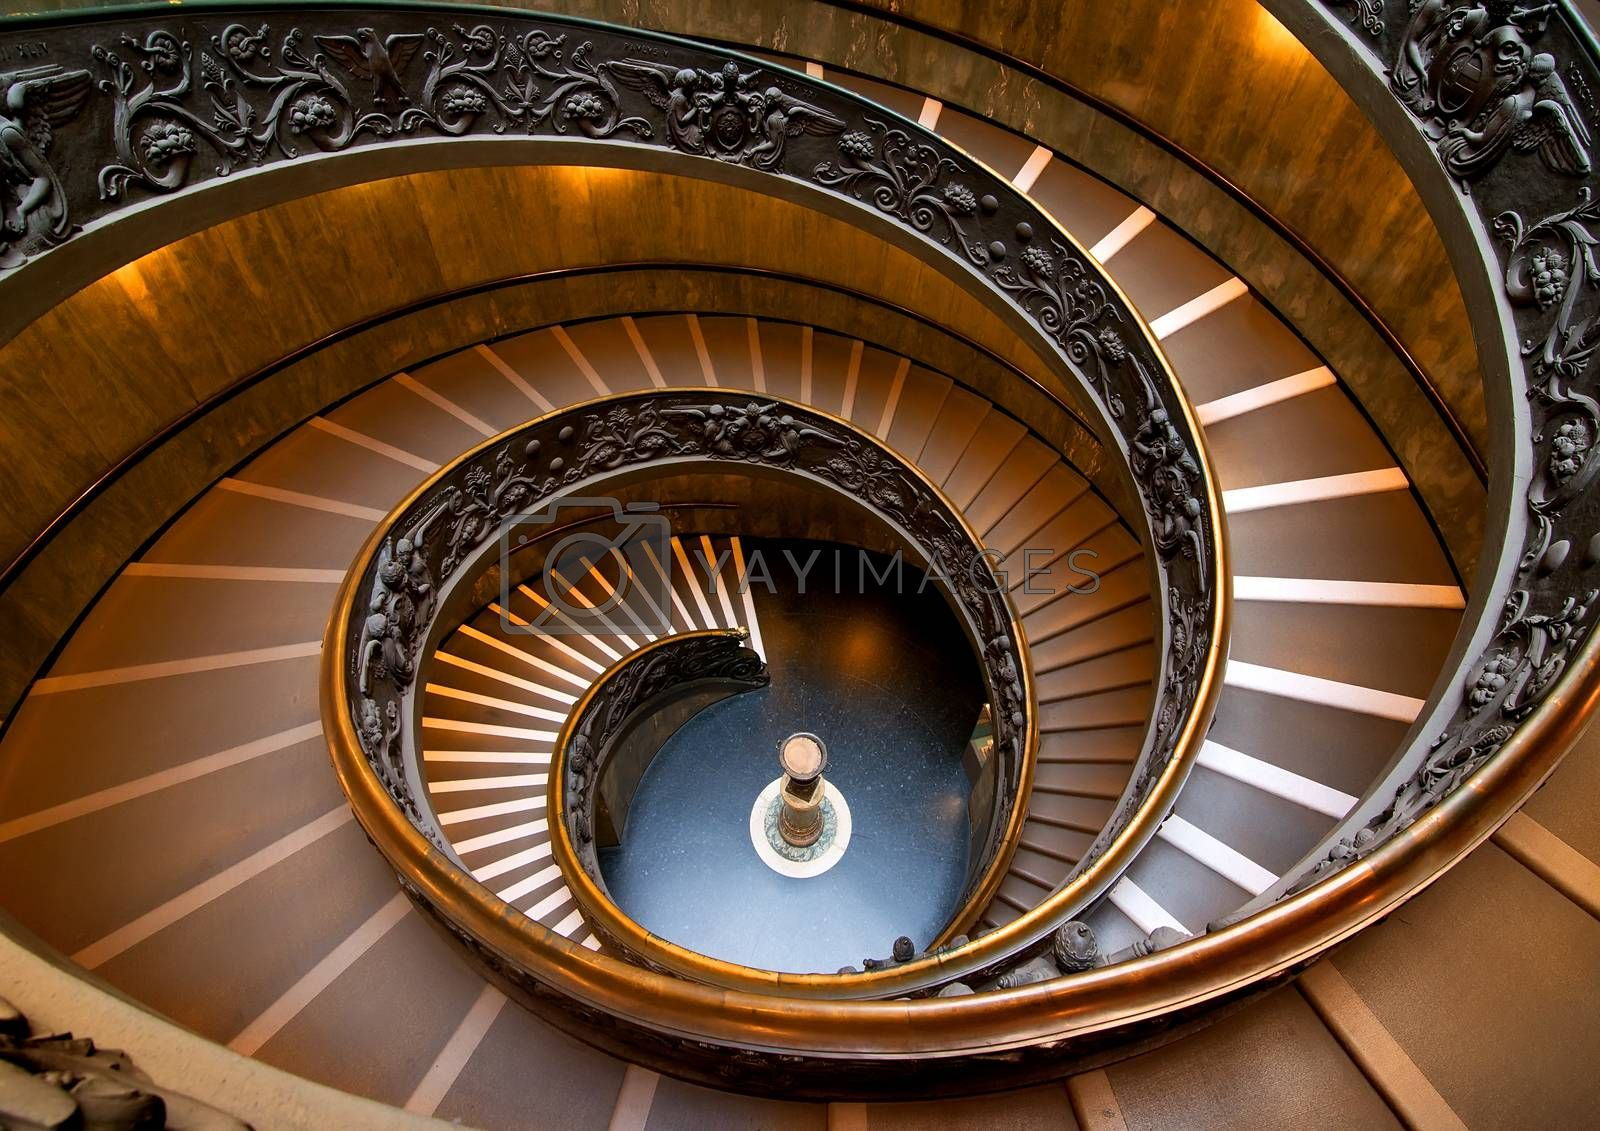 Round staircase in Vatican museum, view from above. Vatican on August 19, ‎2016 in Rome, Italy